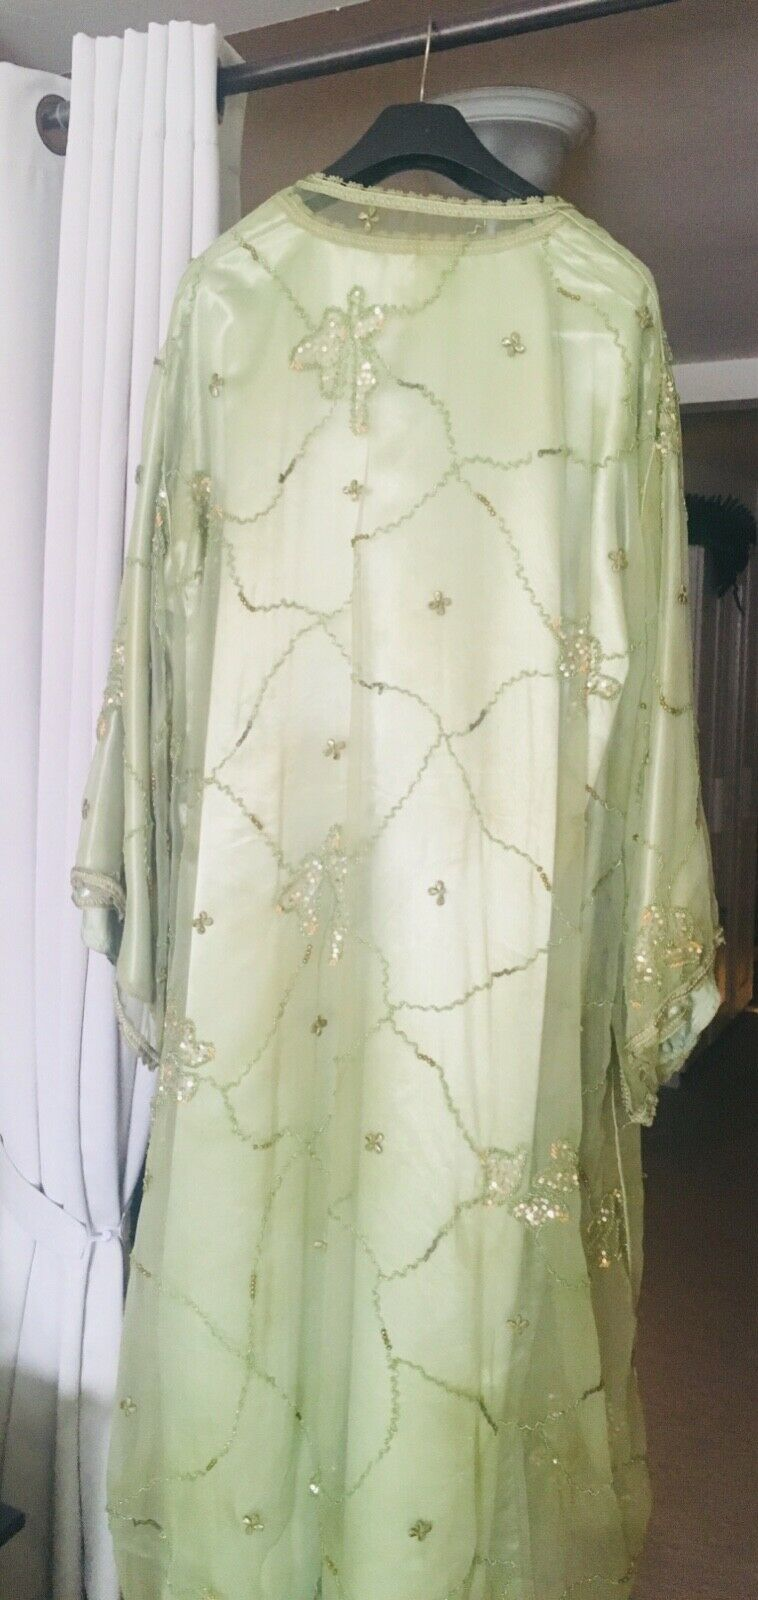 SALE     Mgoldccan dress, only worn worn worn 2 times, size 30-32. Handmade beautiful. 2e1270